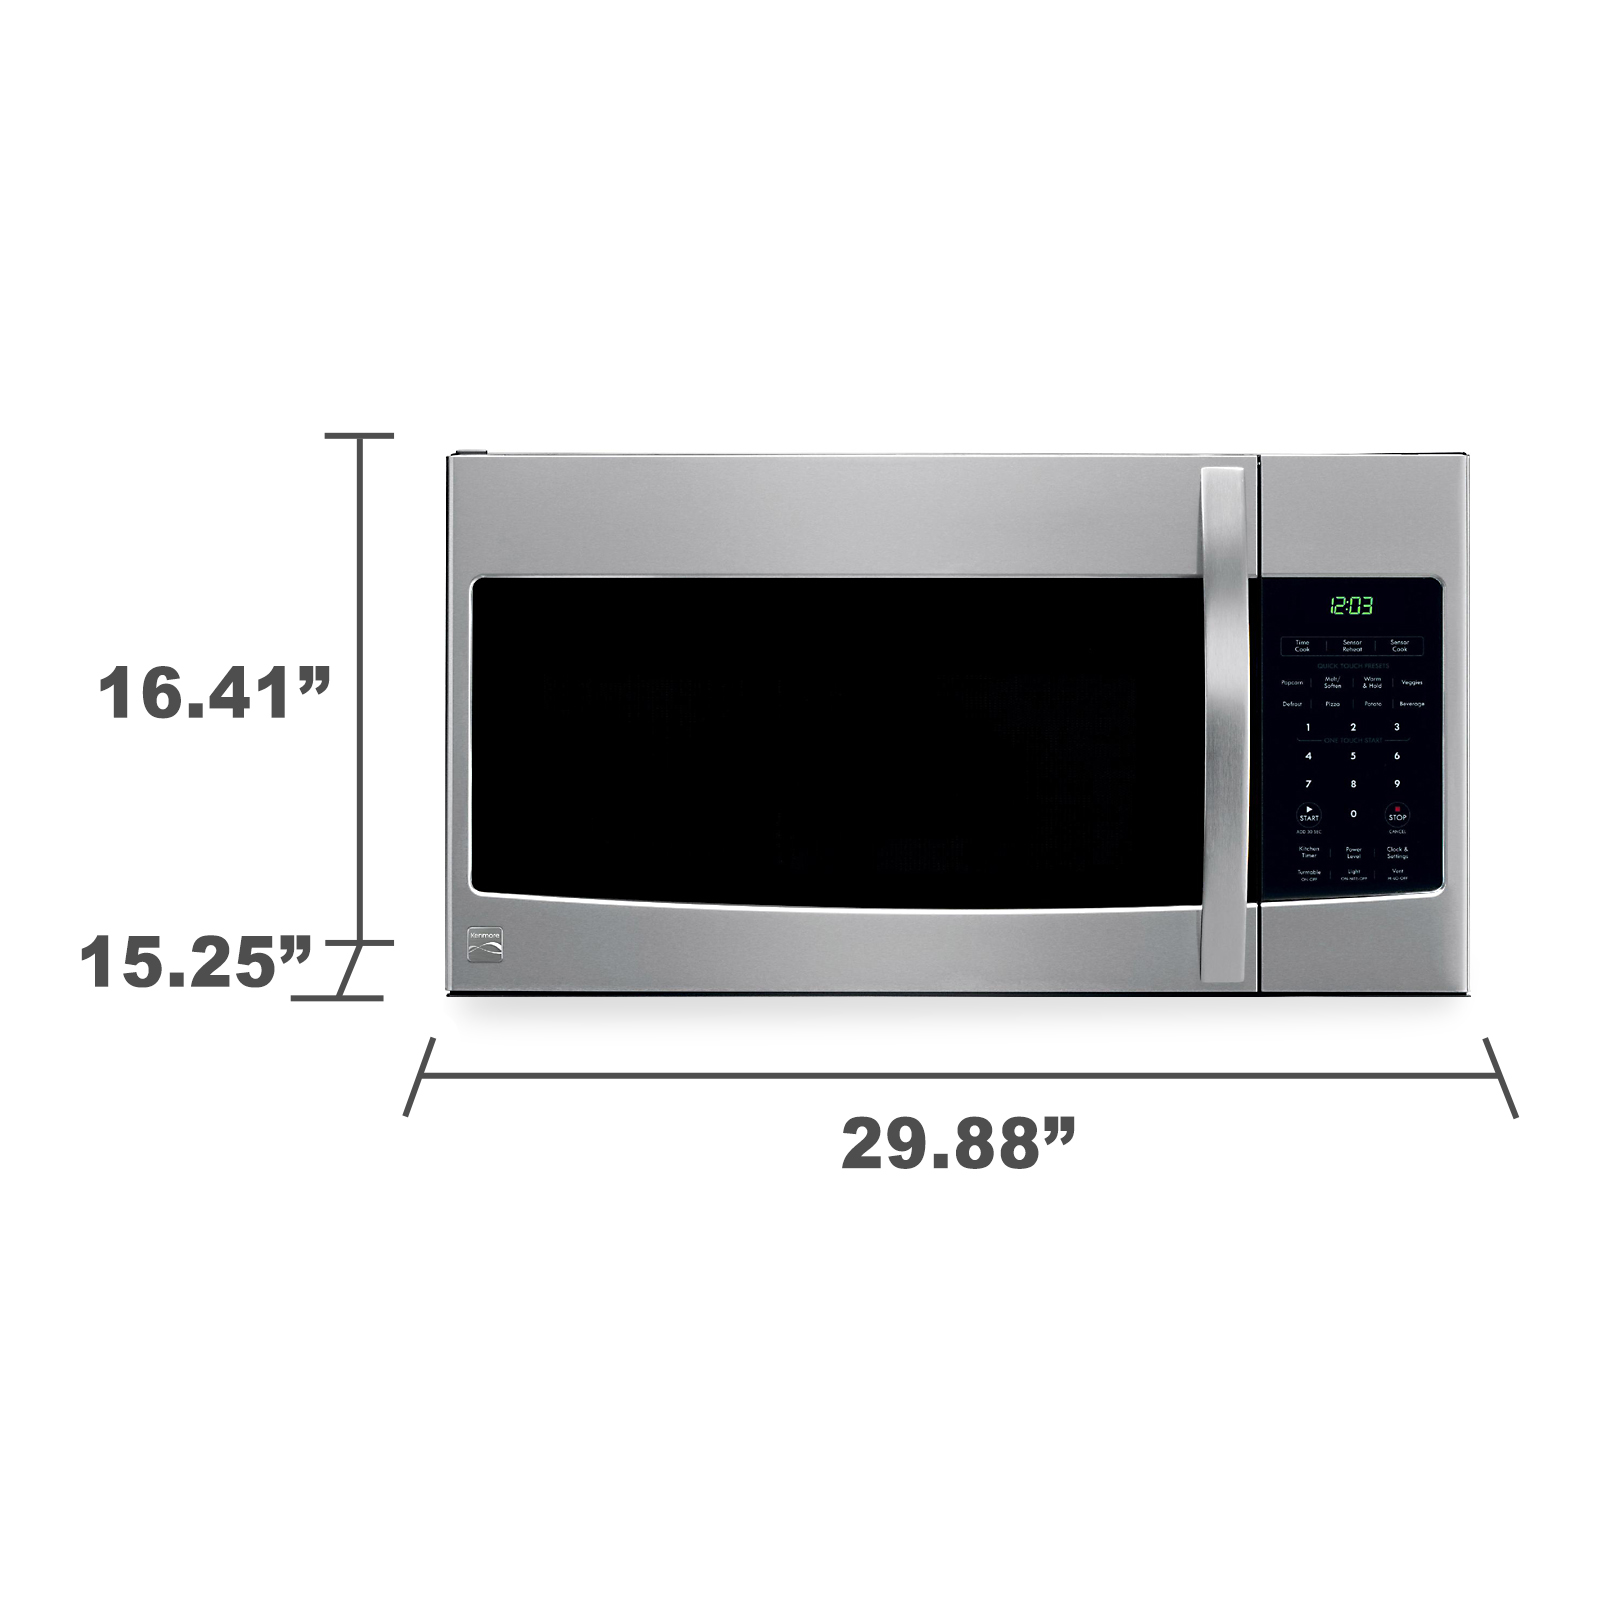 Kenmore 80343 1.7 cu. ft. Over-the-Range Microwave - Stainless Steel